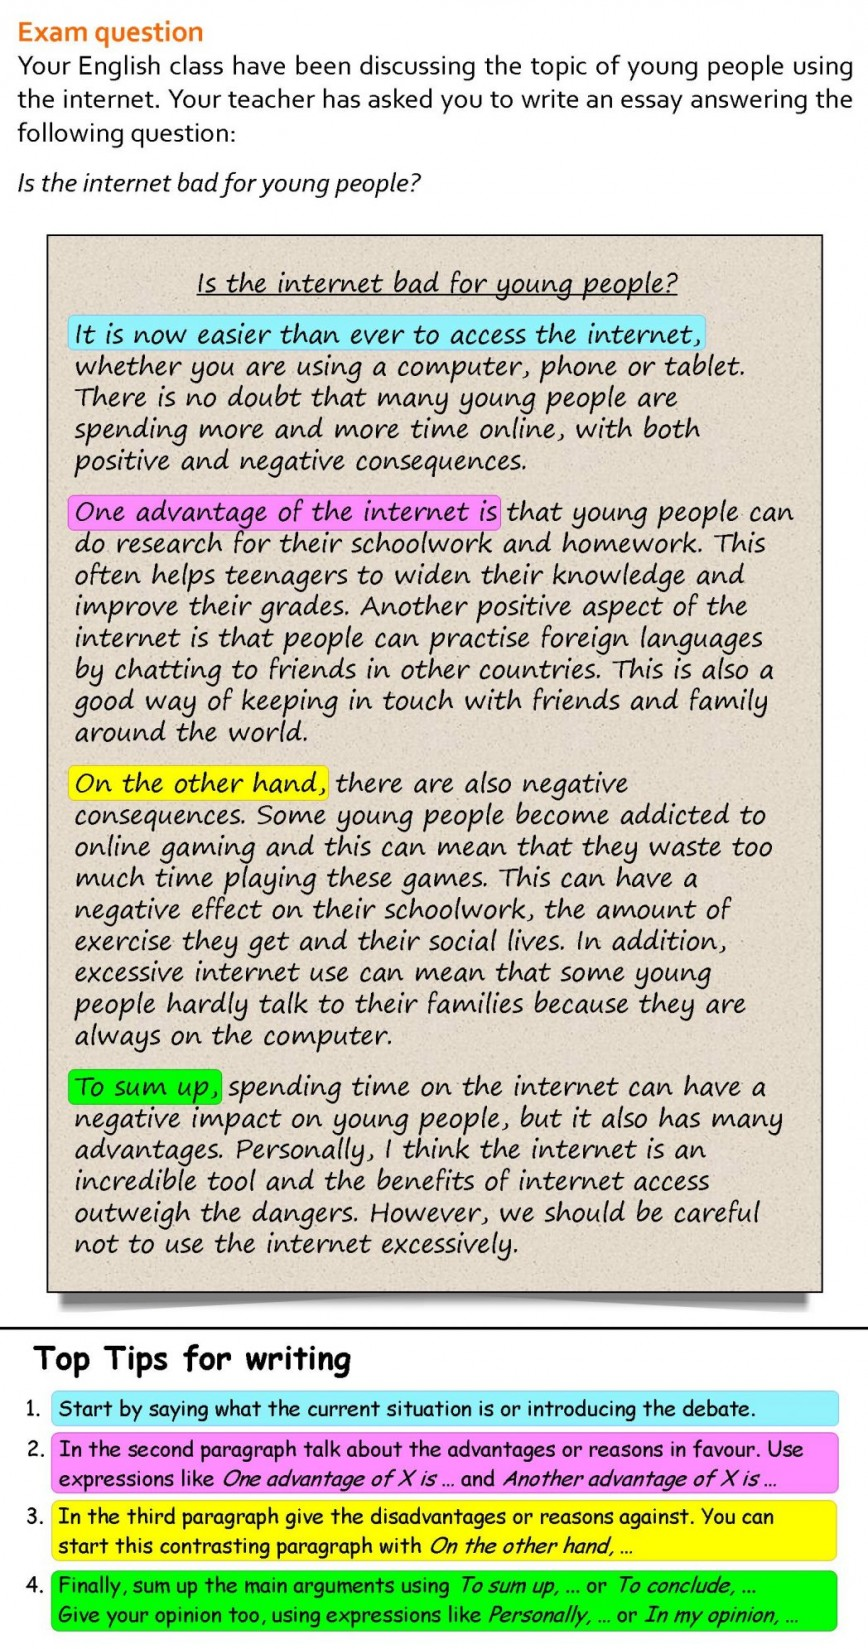 005 Essay Example English Internet For And Against About The Writing Advantages Disadvantages B2w A Es Of In Hindi 1048x1991 Stunning On Globalisation Addiction